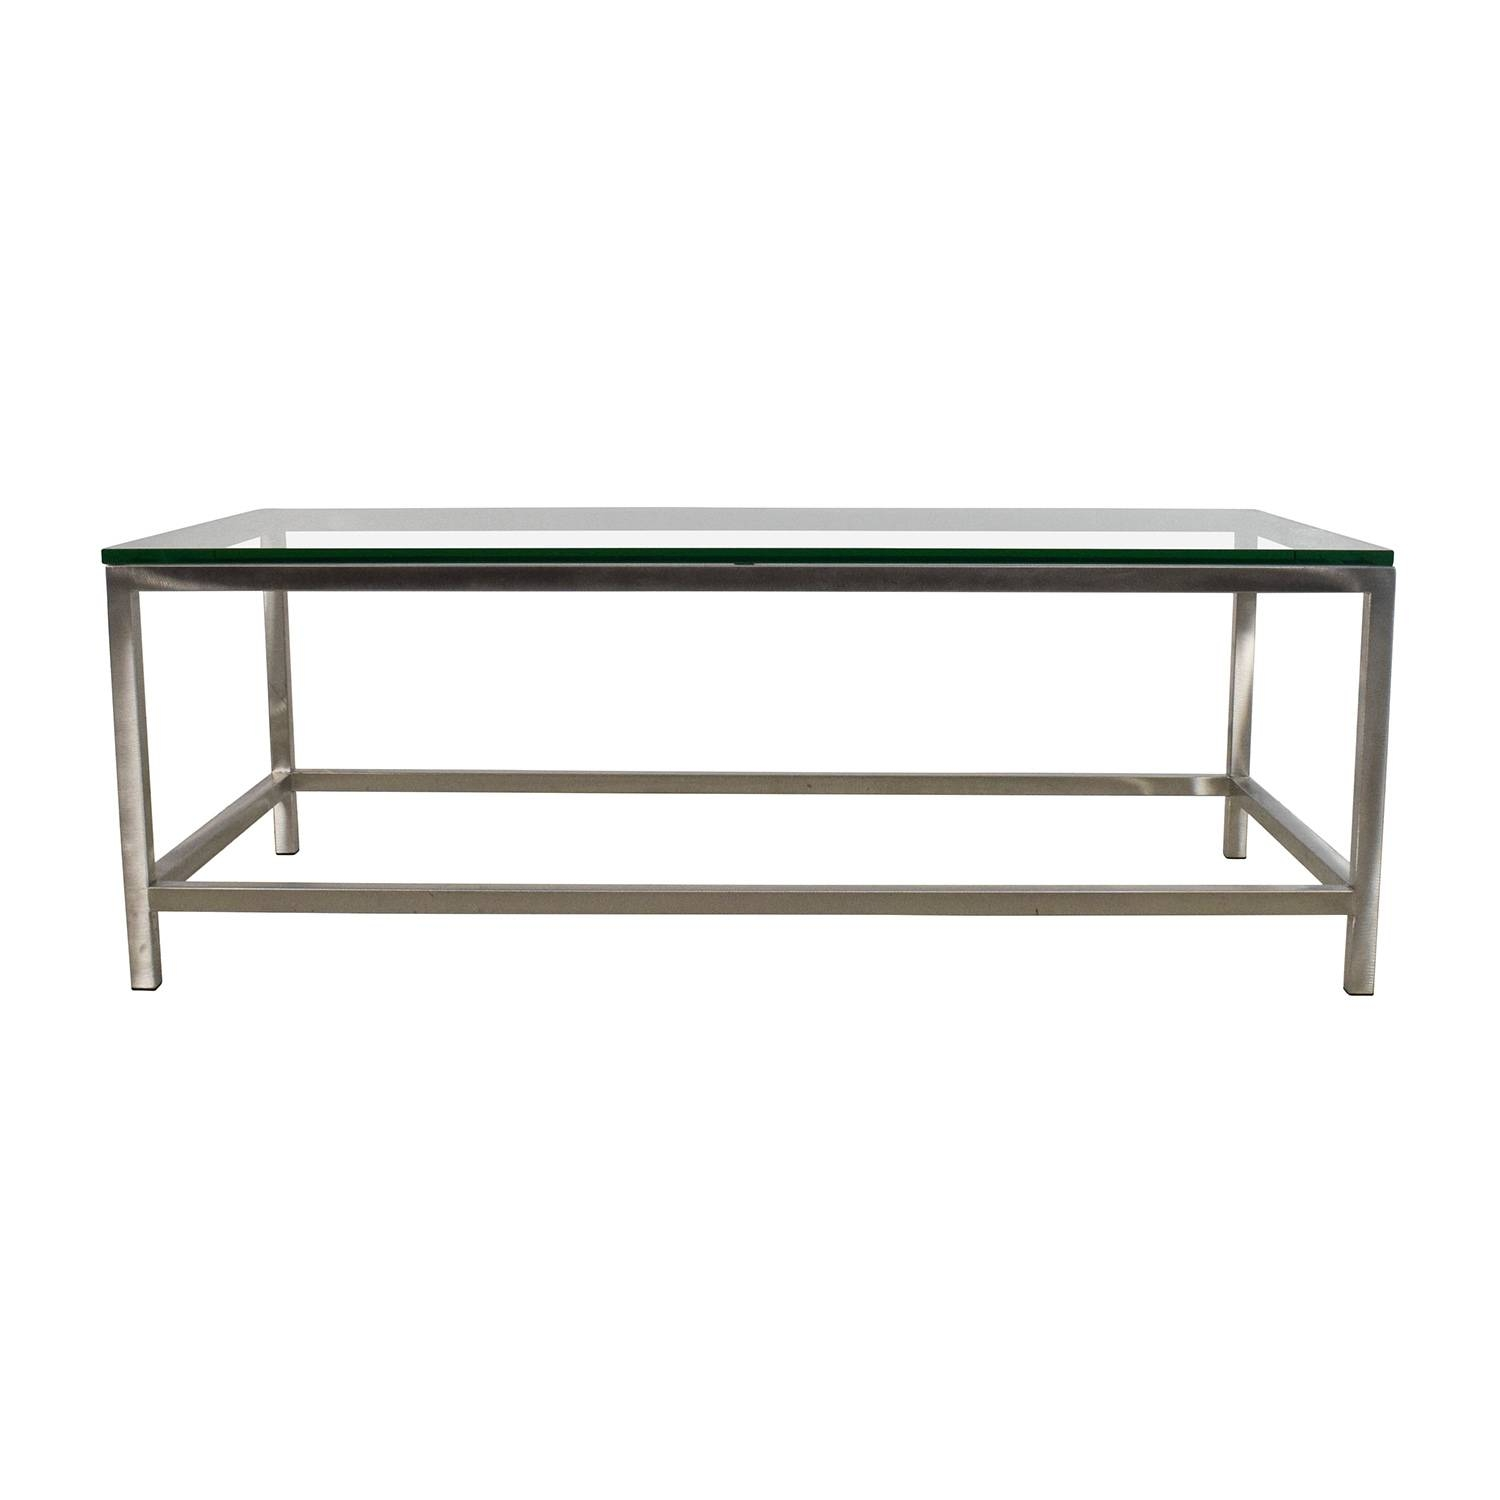 50% Off - Vintage Vintage Glass Coffee Table / Tables with regard to Vintage Glass Coffee Tables (Image 1 of 30)